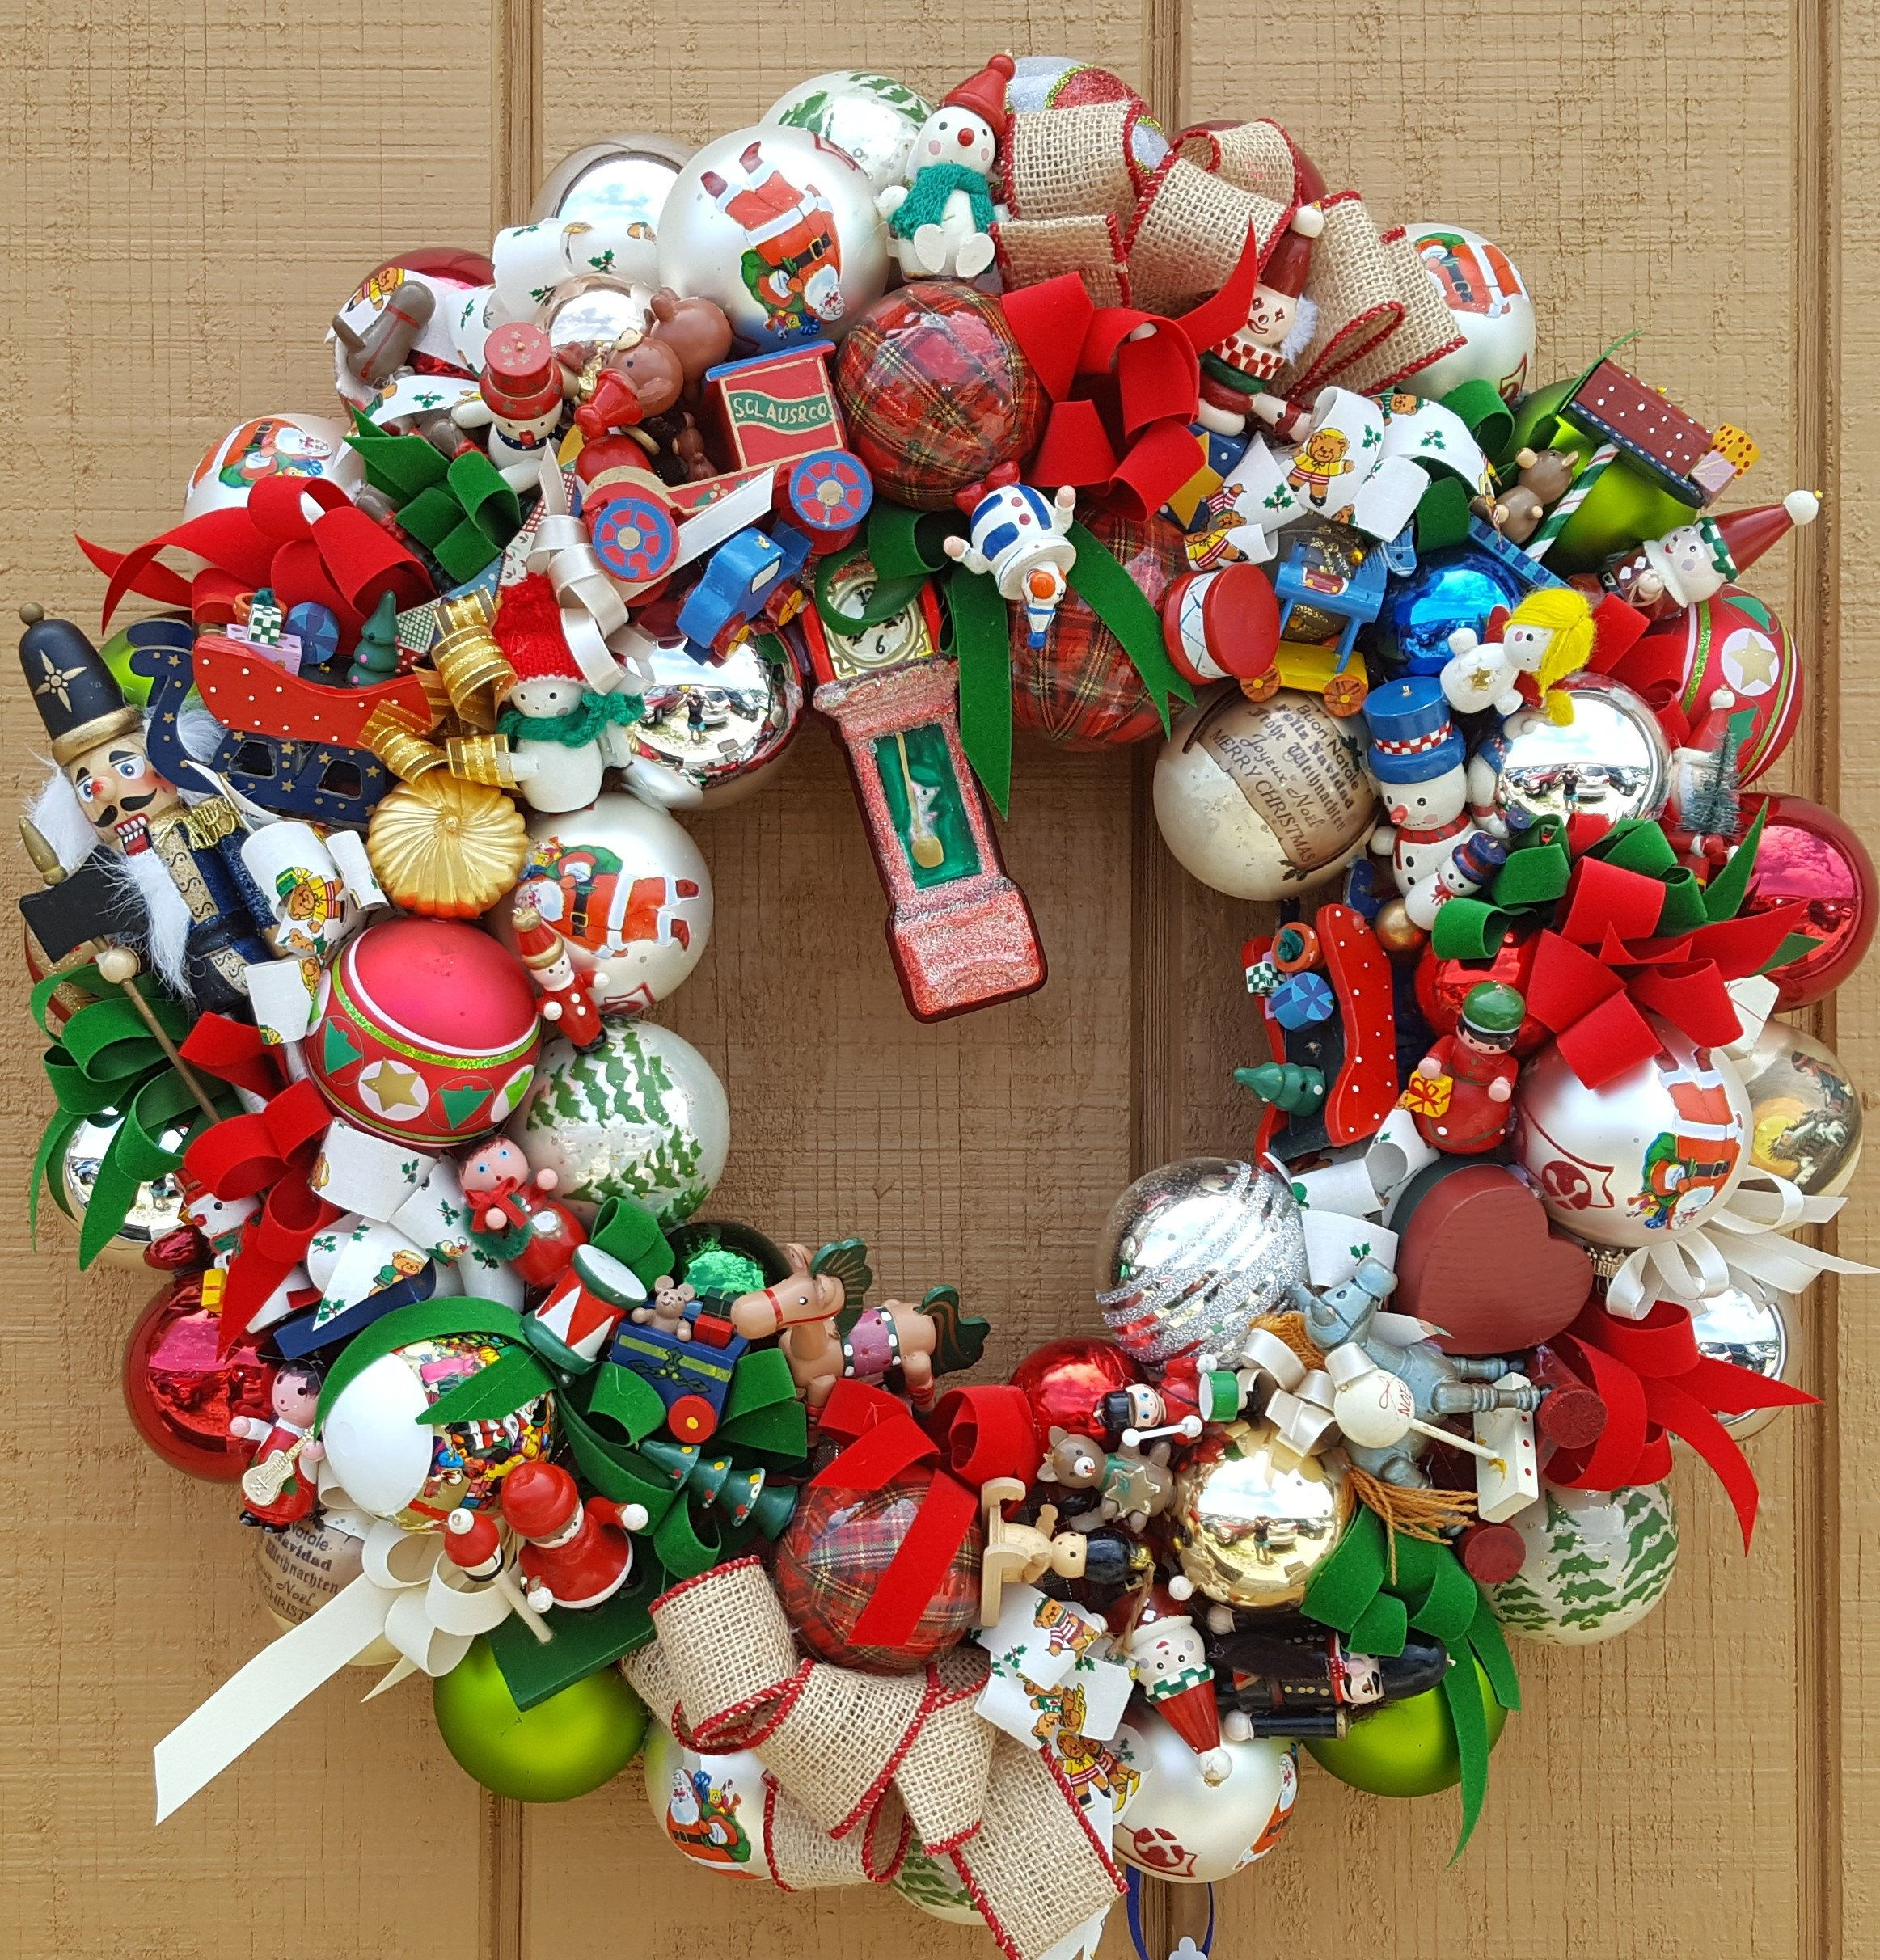 Vintage Wood Glass Ornament 21 Christmas Holiday Wreath Hand Crafted Clock Glass Ornamen Holiday Wreaths Glass Christmas Ornaments Contemporary Christmas